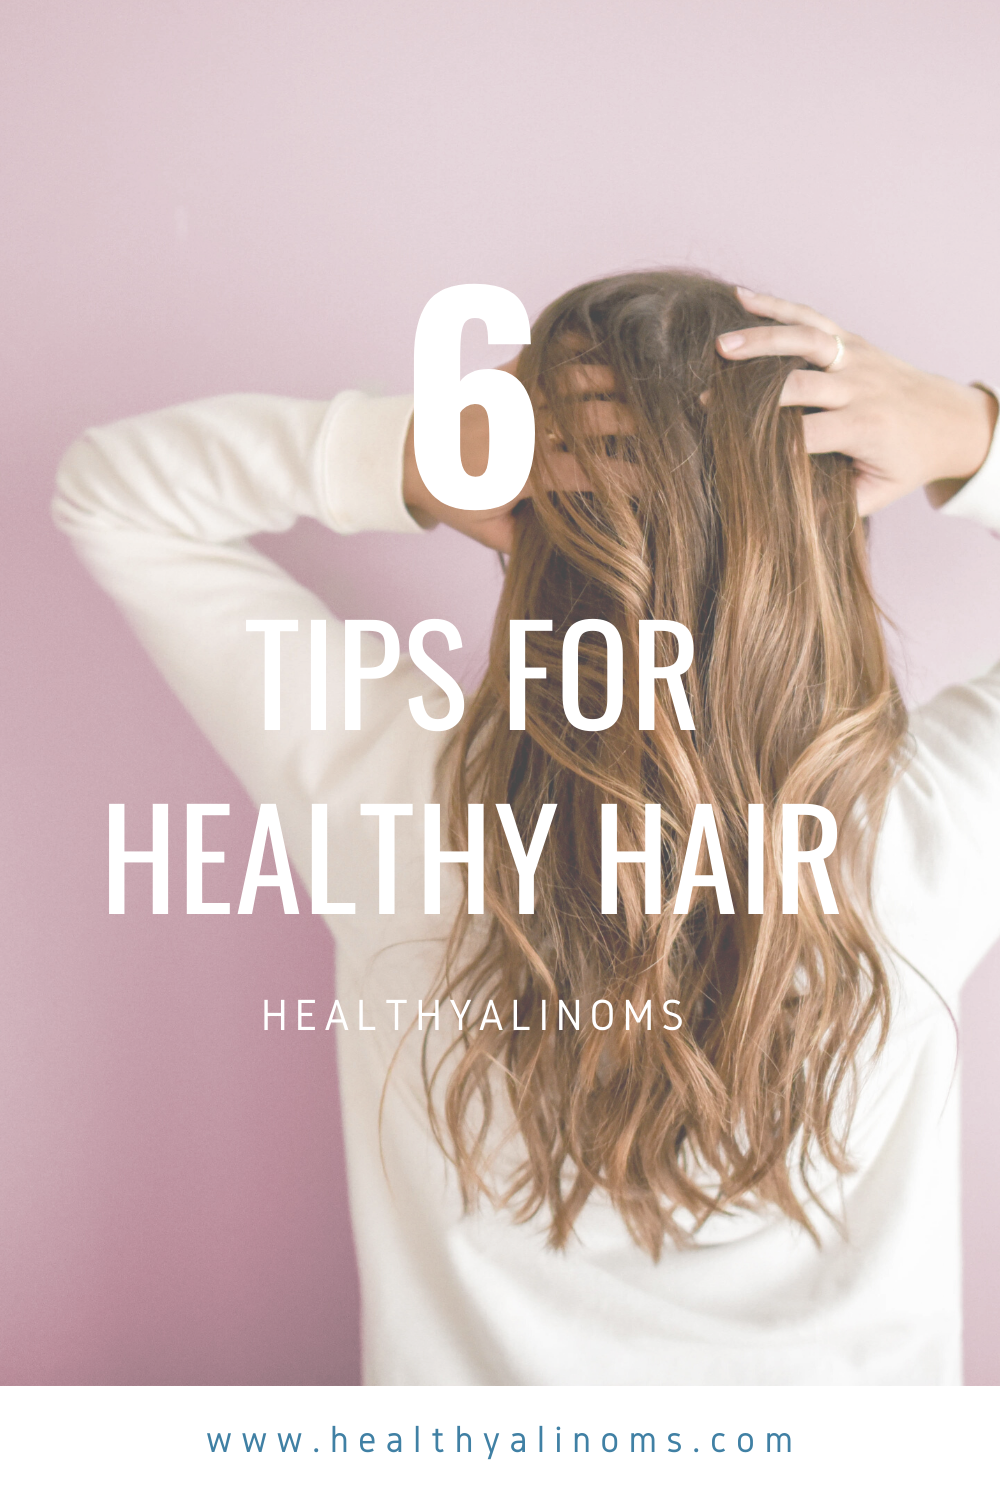 Everyone wants beautiful hair! Here are some tips on how to get